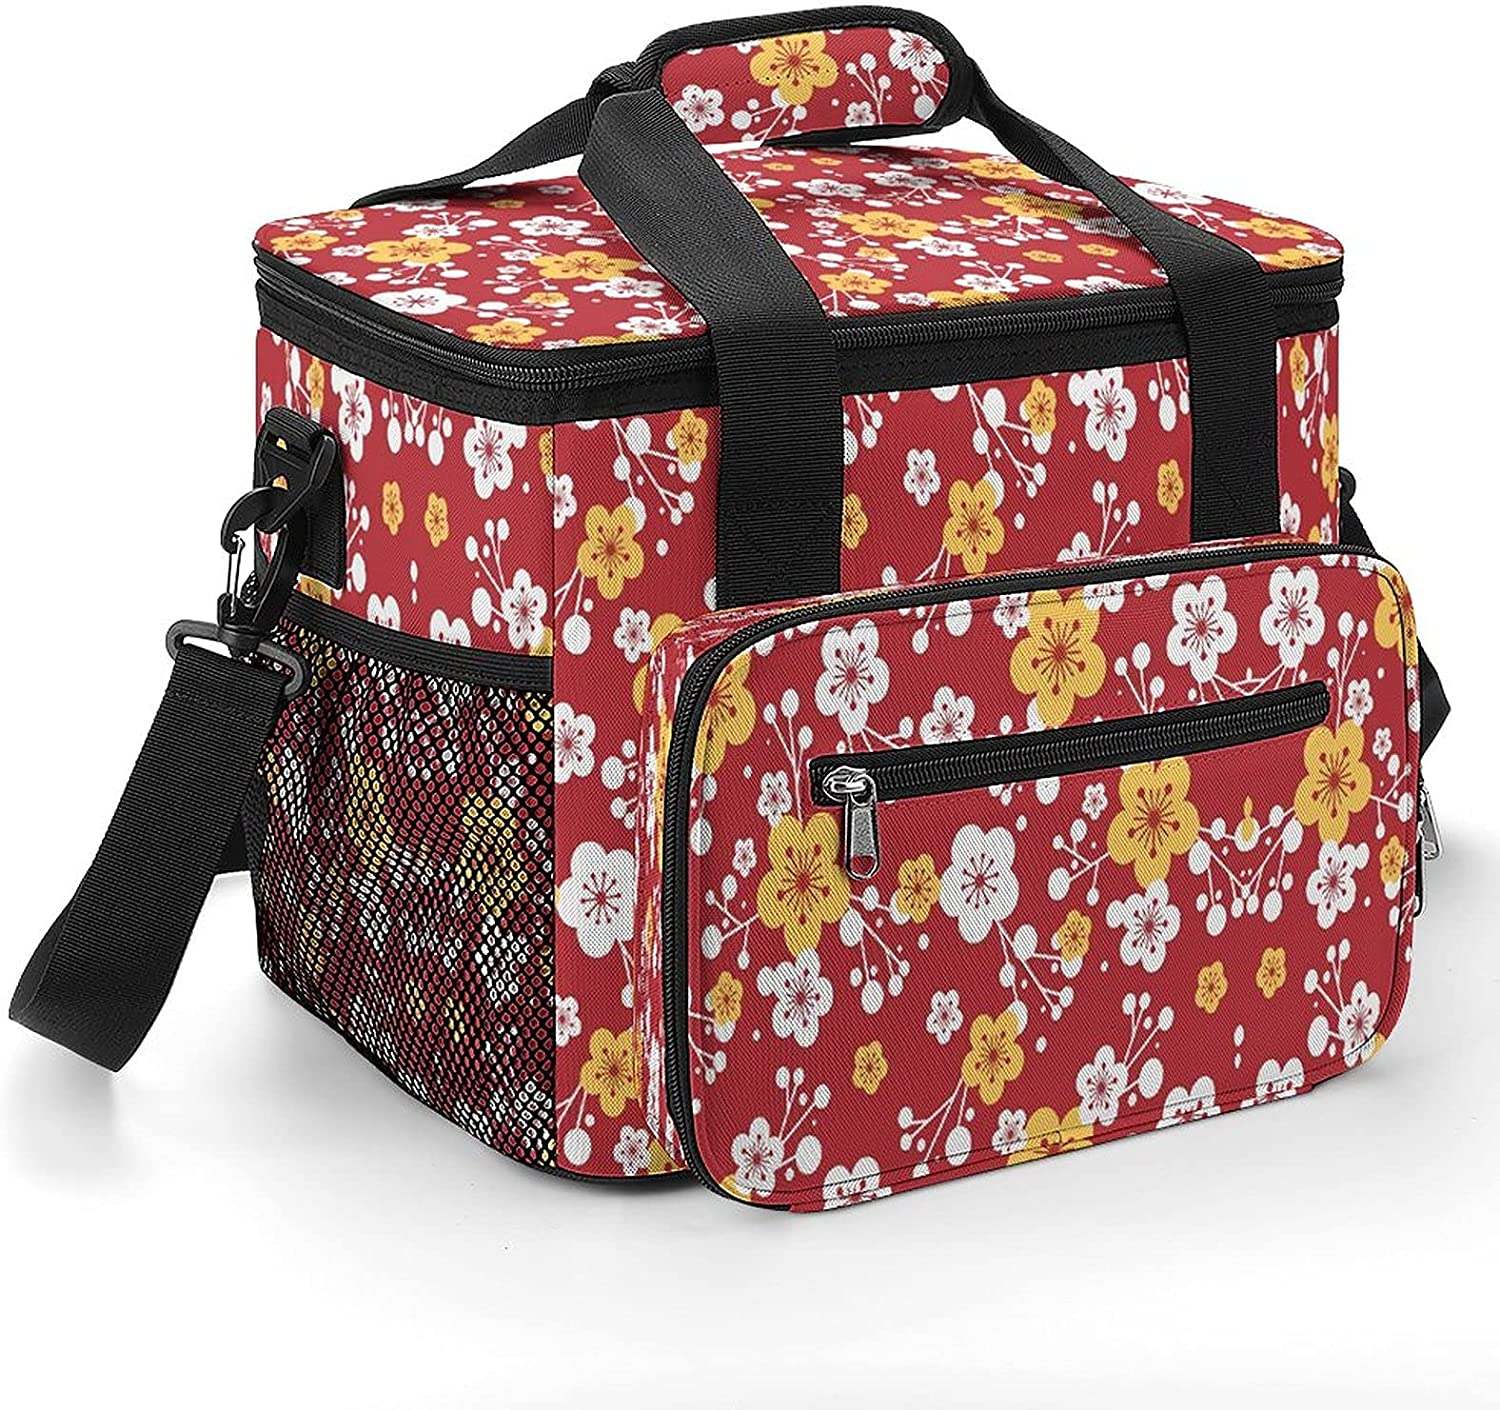 Cherry Flower Cooler Shipping included Bag with Leakproof Strap Max 76% OFF Insulated Shoulder